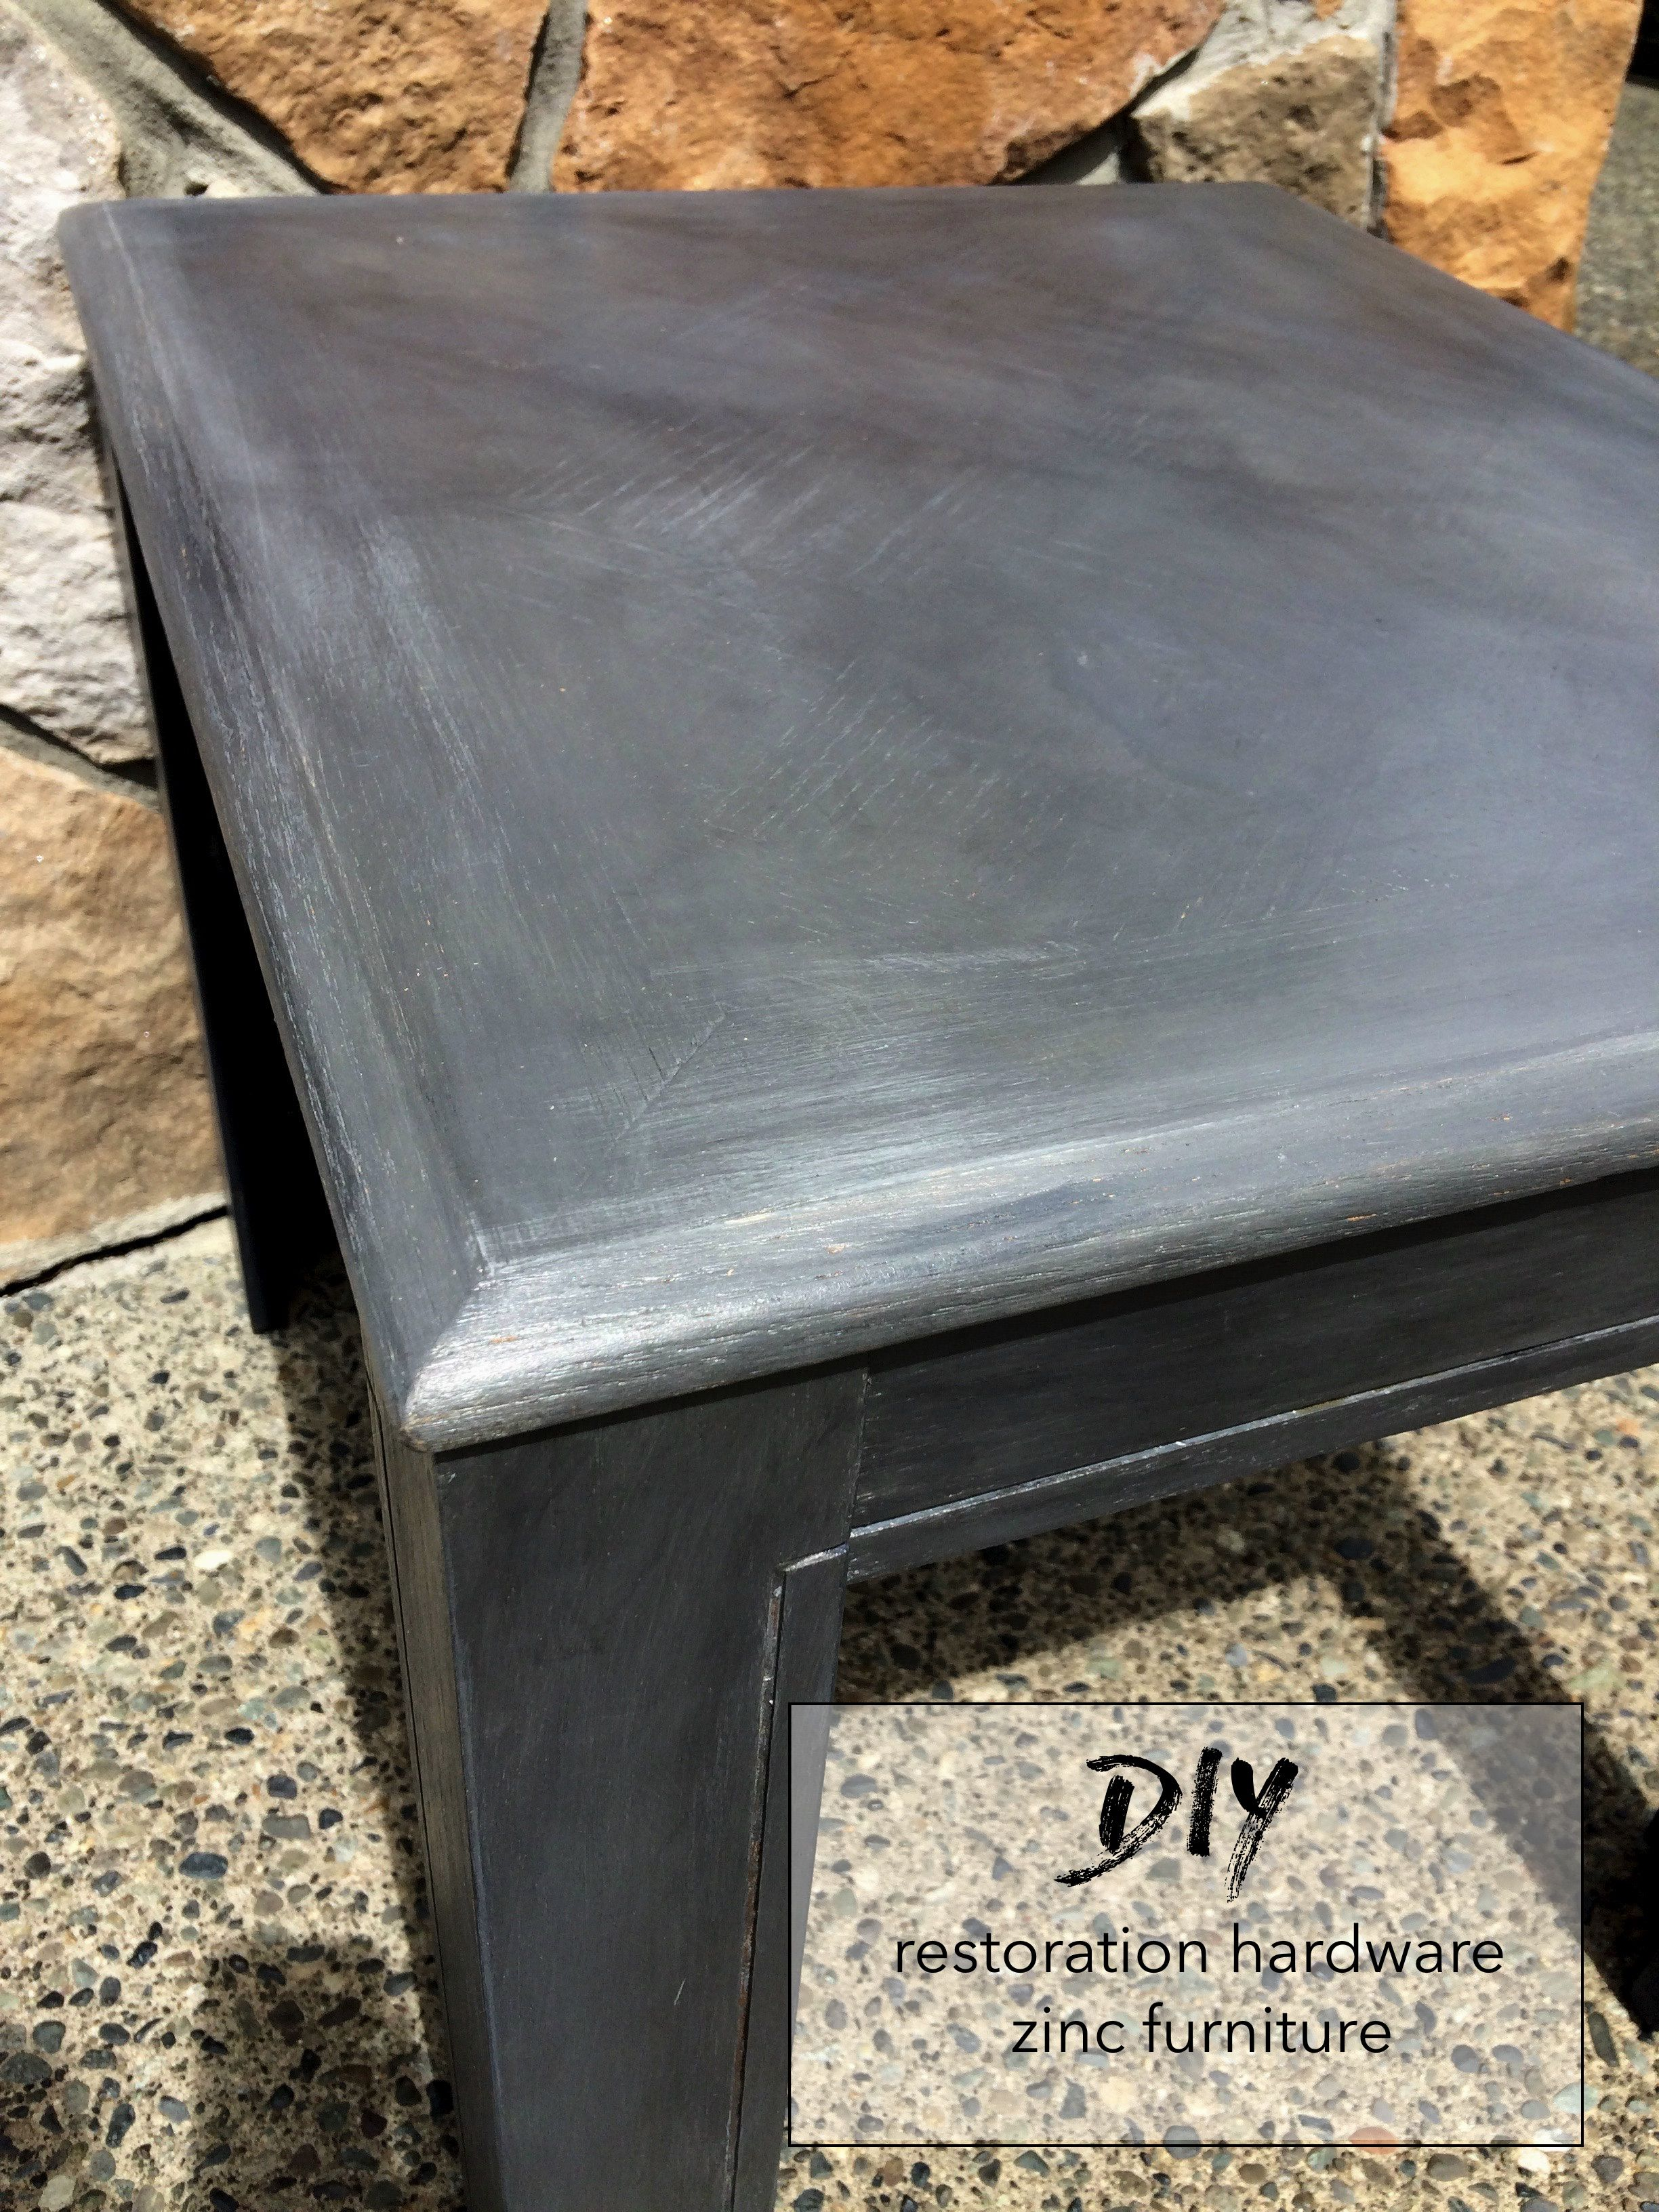 diy refinish table with the restoration hardware zinc look!